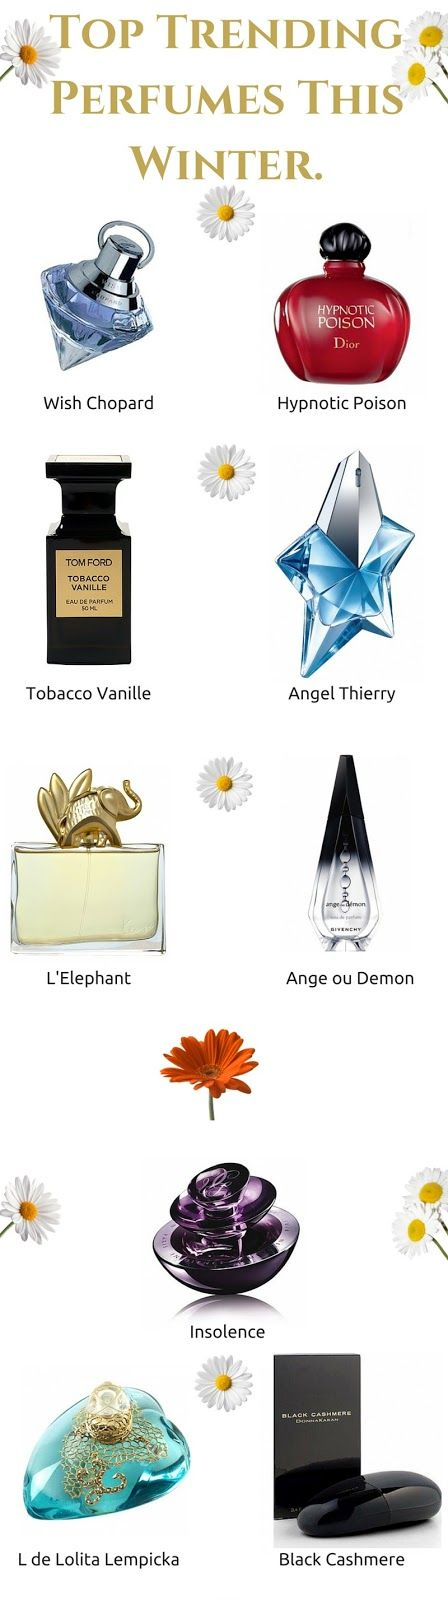 Perfumes for Women: Top 10 Winter Fragrances 2015